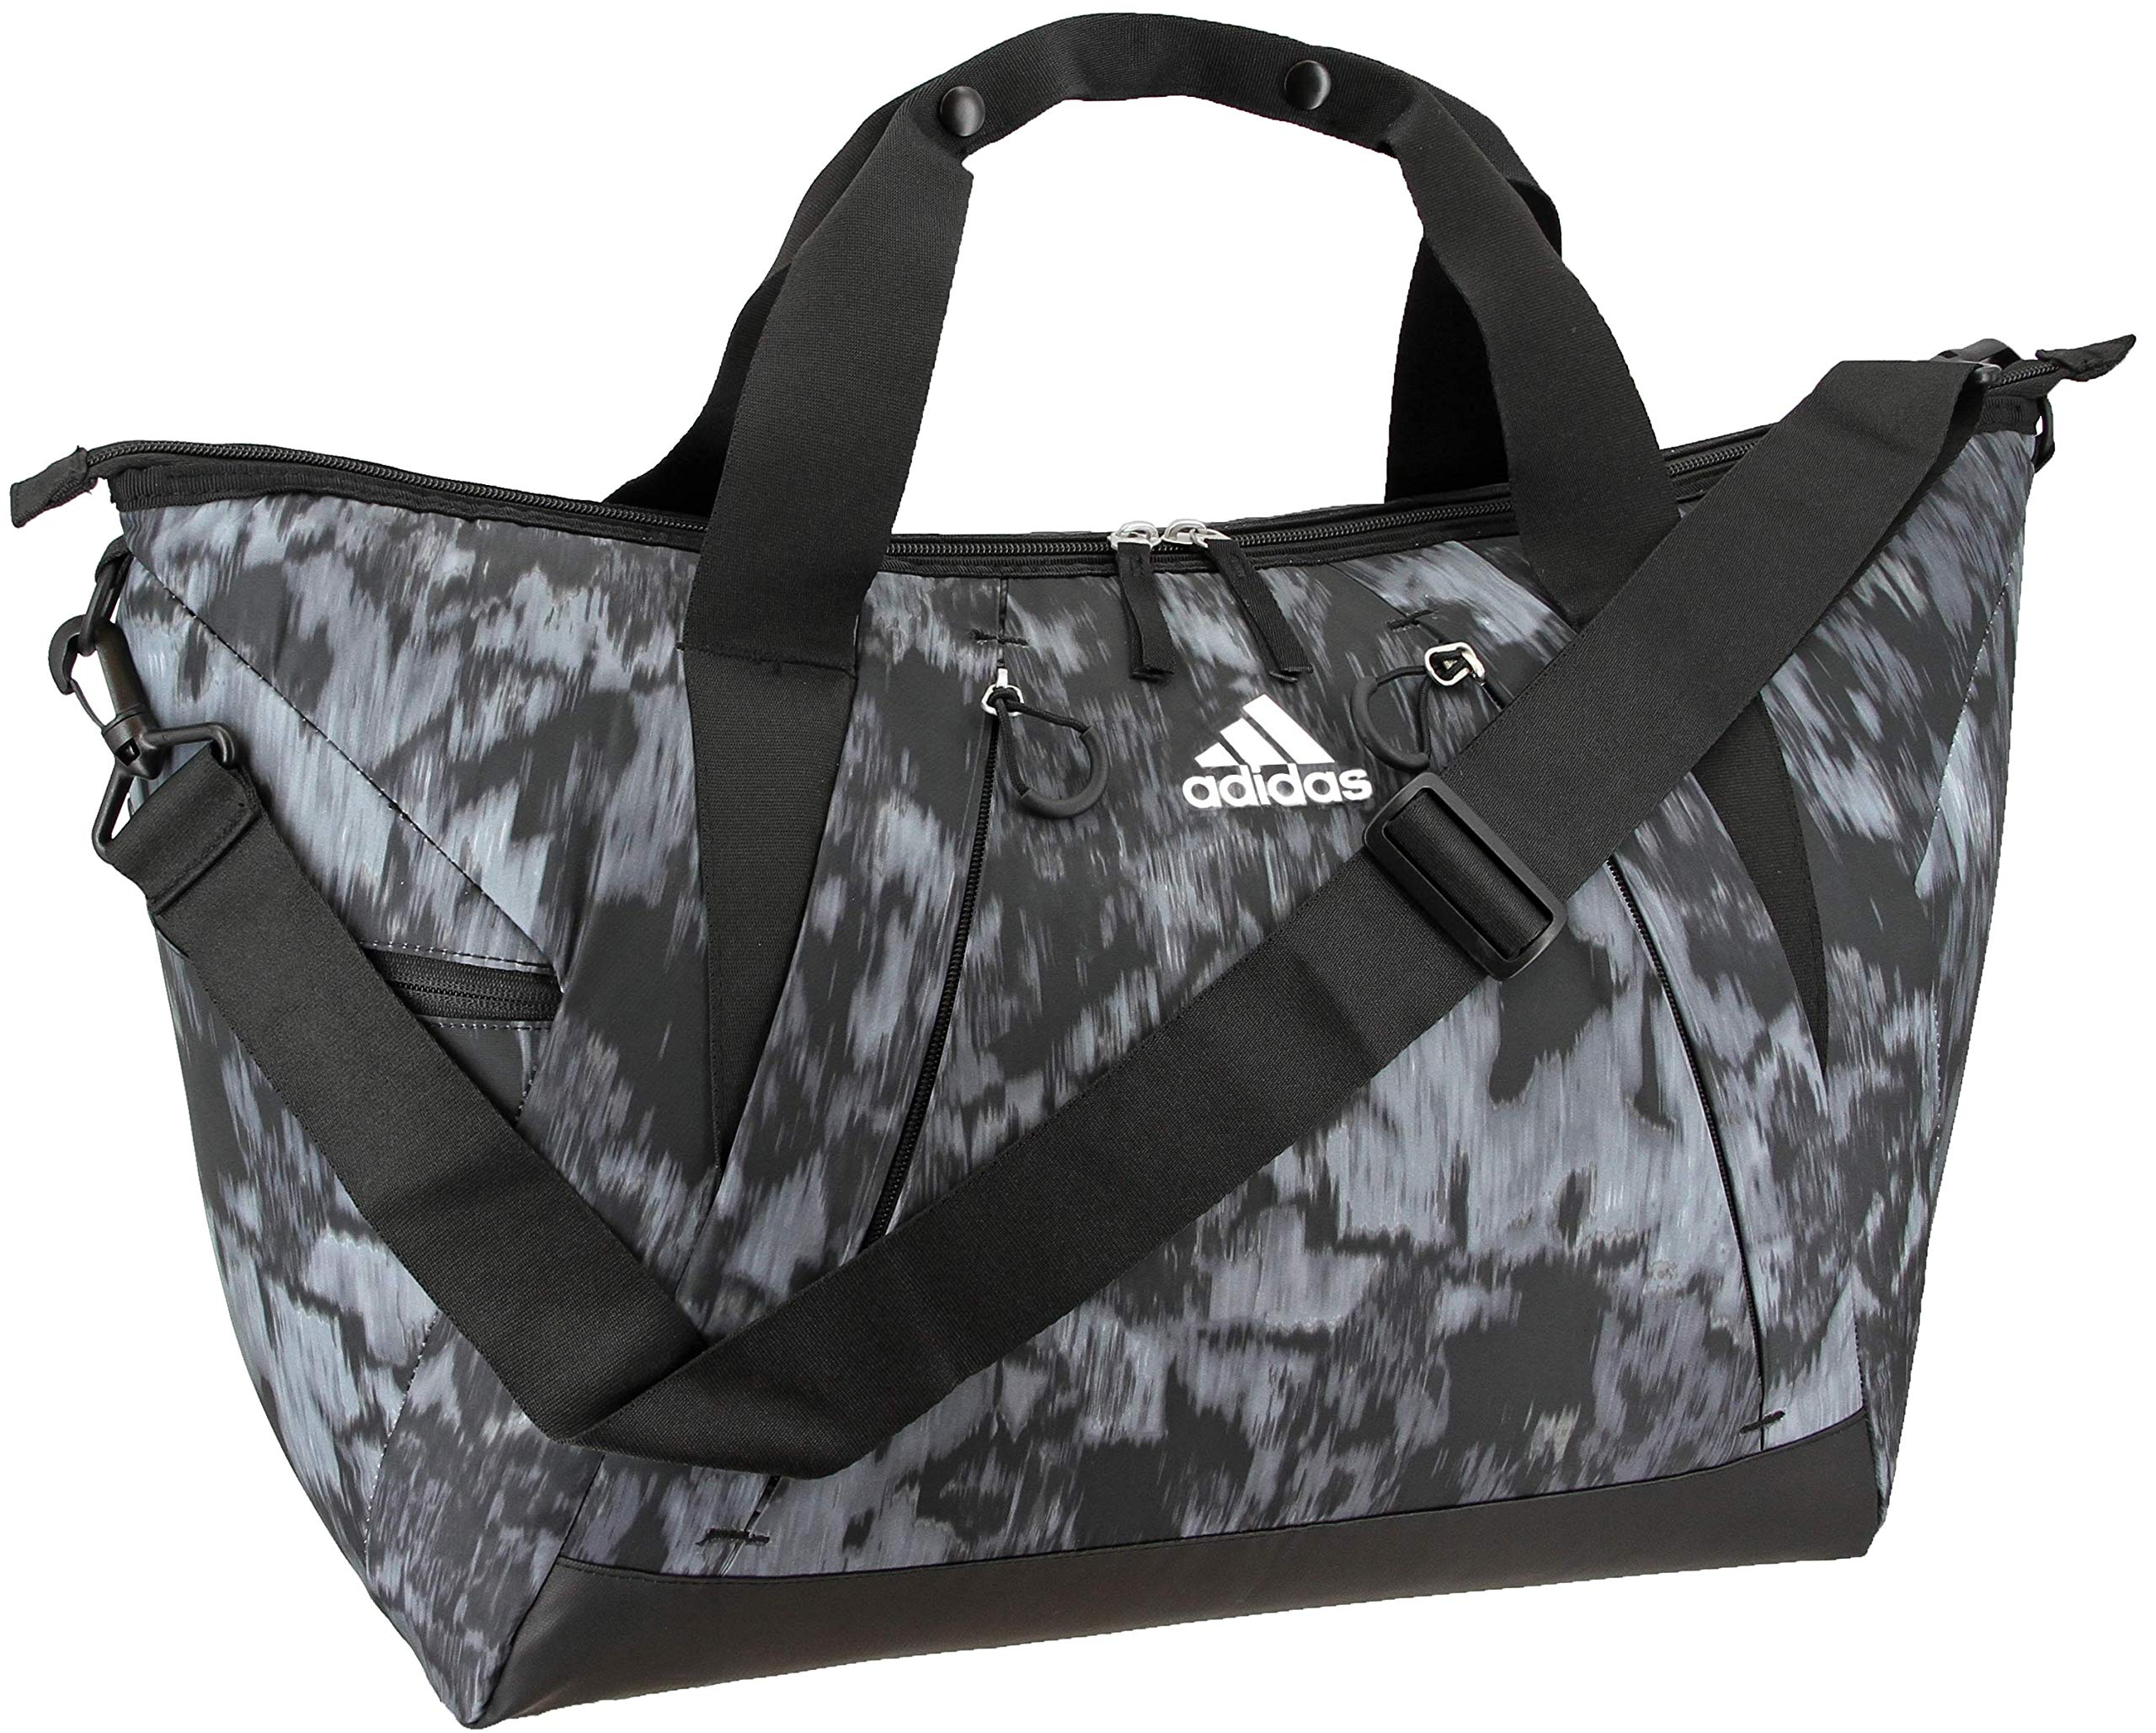 adidas Women's Studio Duffel Bag, Equinox Grey/Black/White, ONE SIZE by adidas